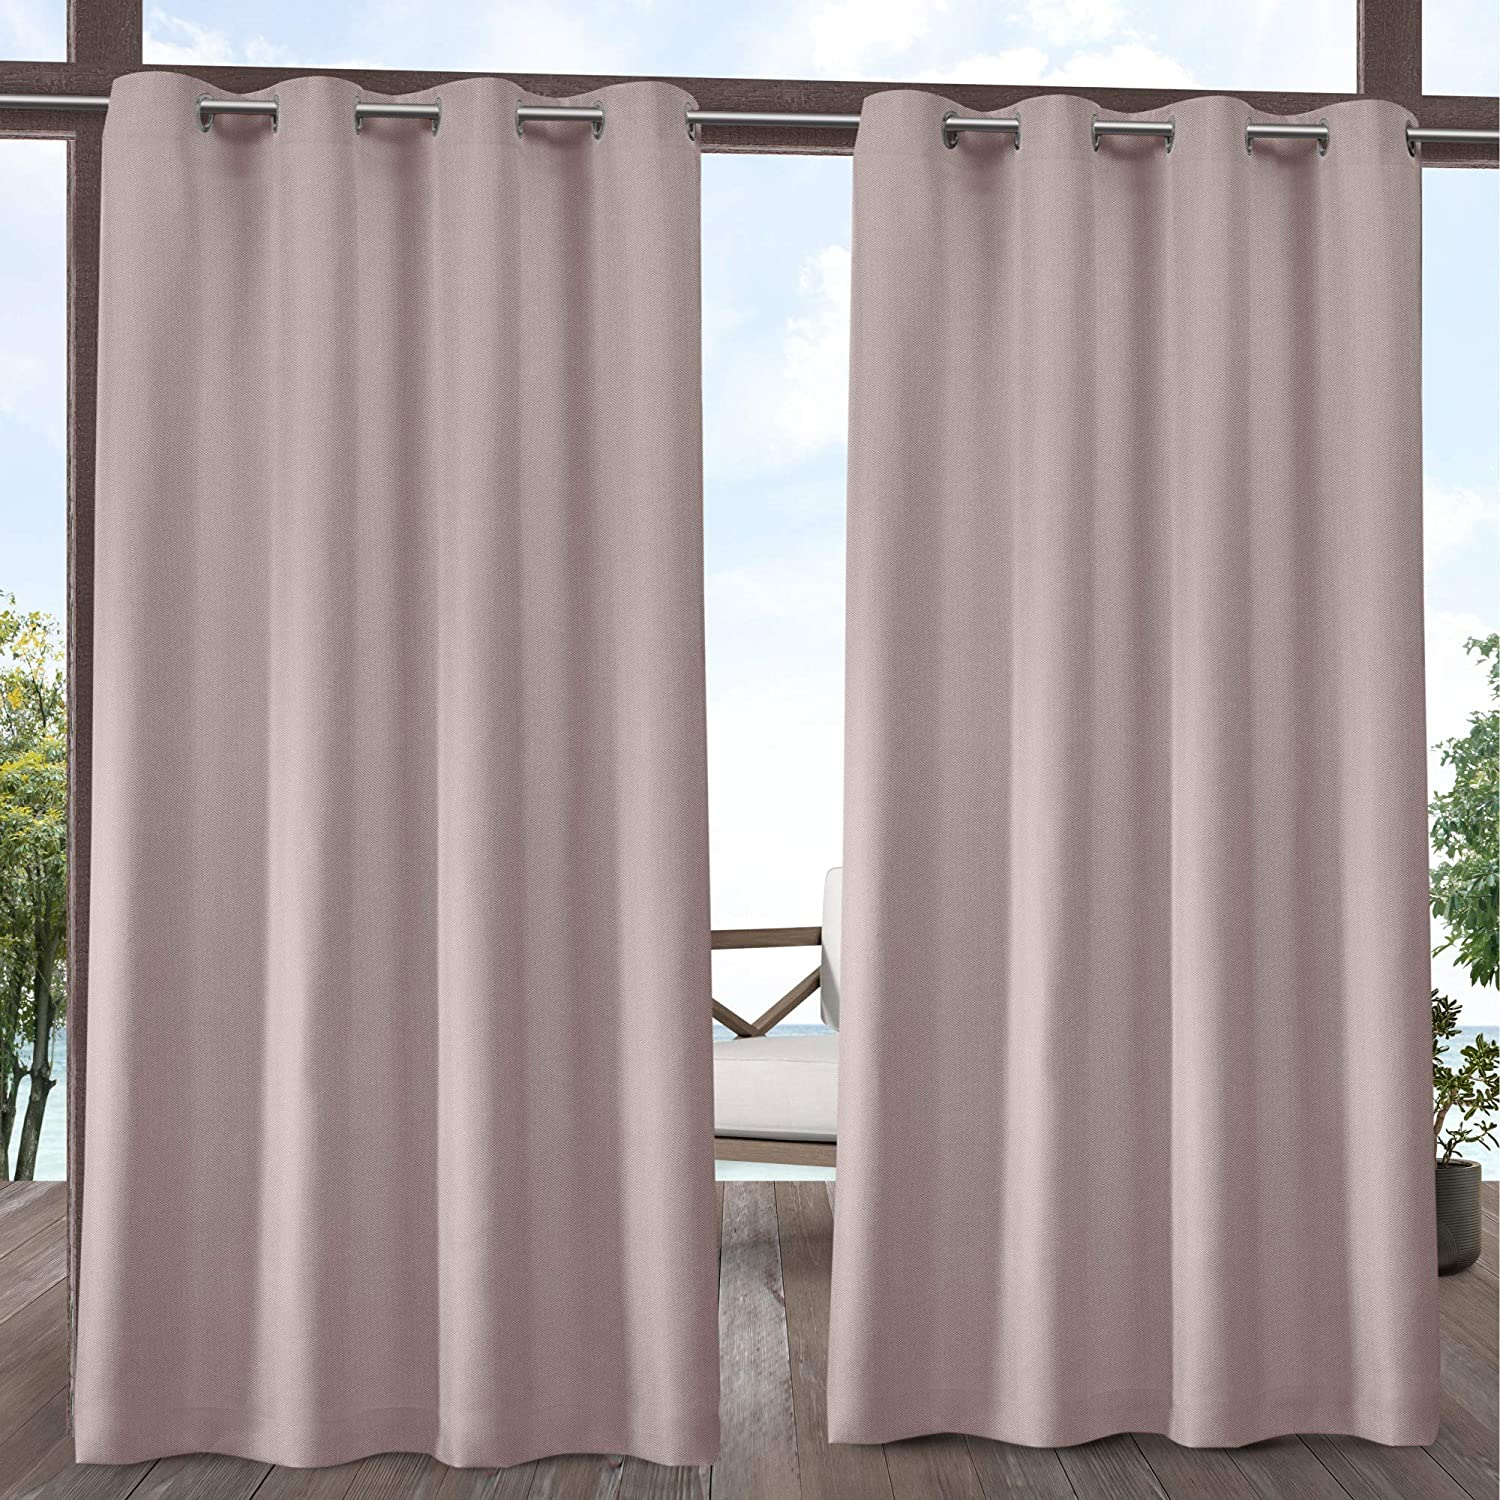 Exclusive Home Curtains Biscayne Indoor/Outdoor Two Tone Textured Window Curtain Panel Pair with Grommet Top, 54x108, Blush